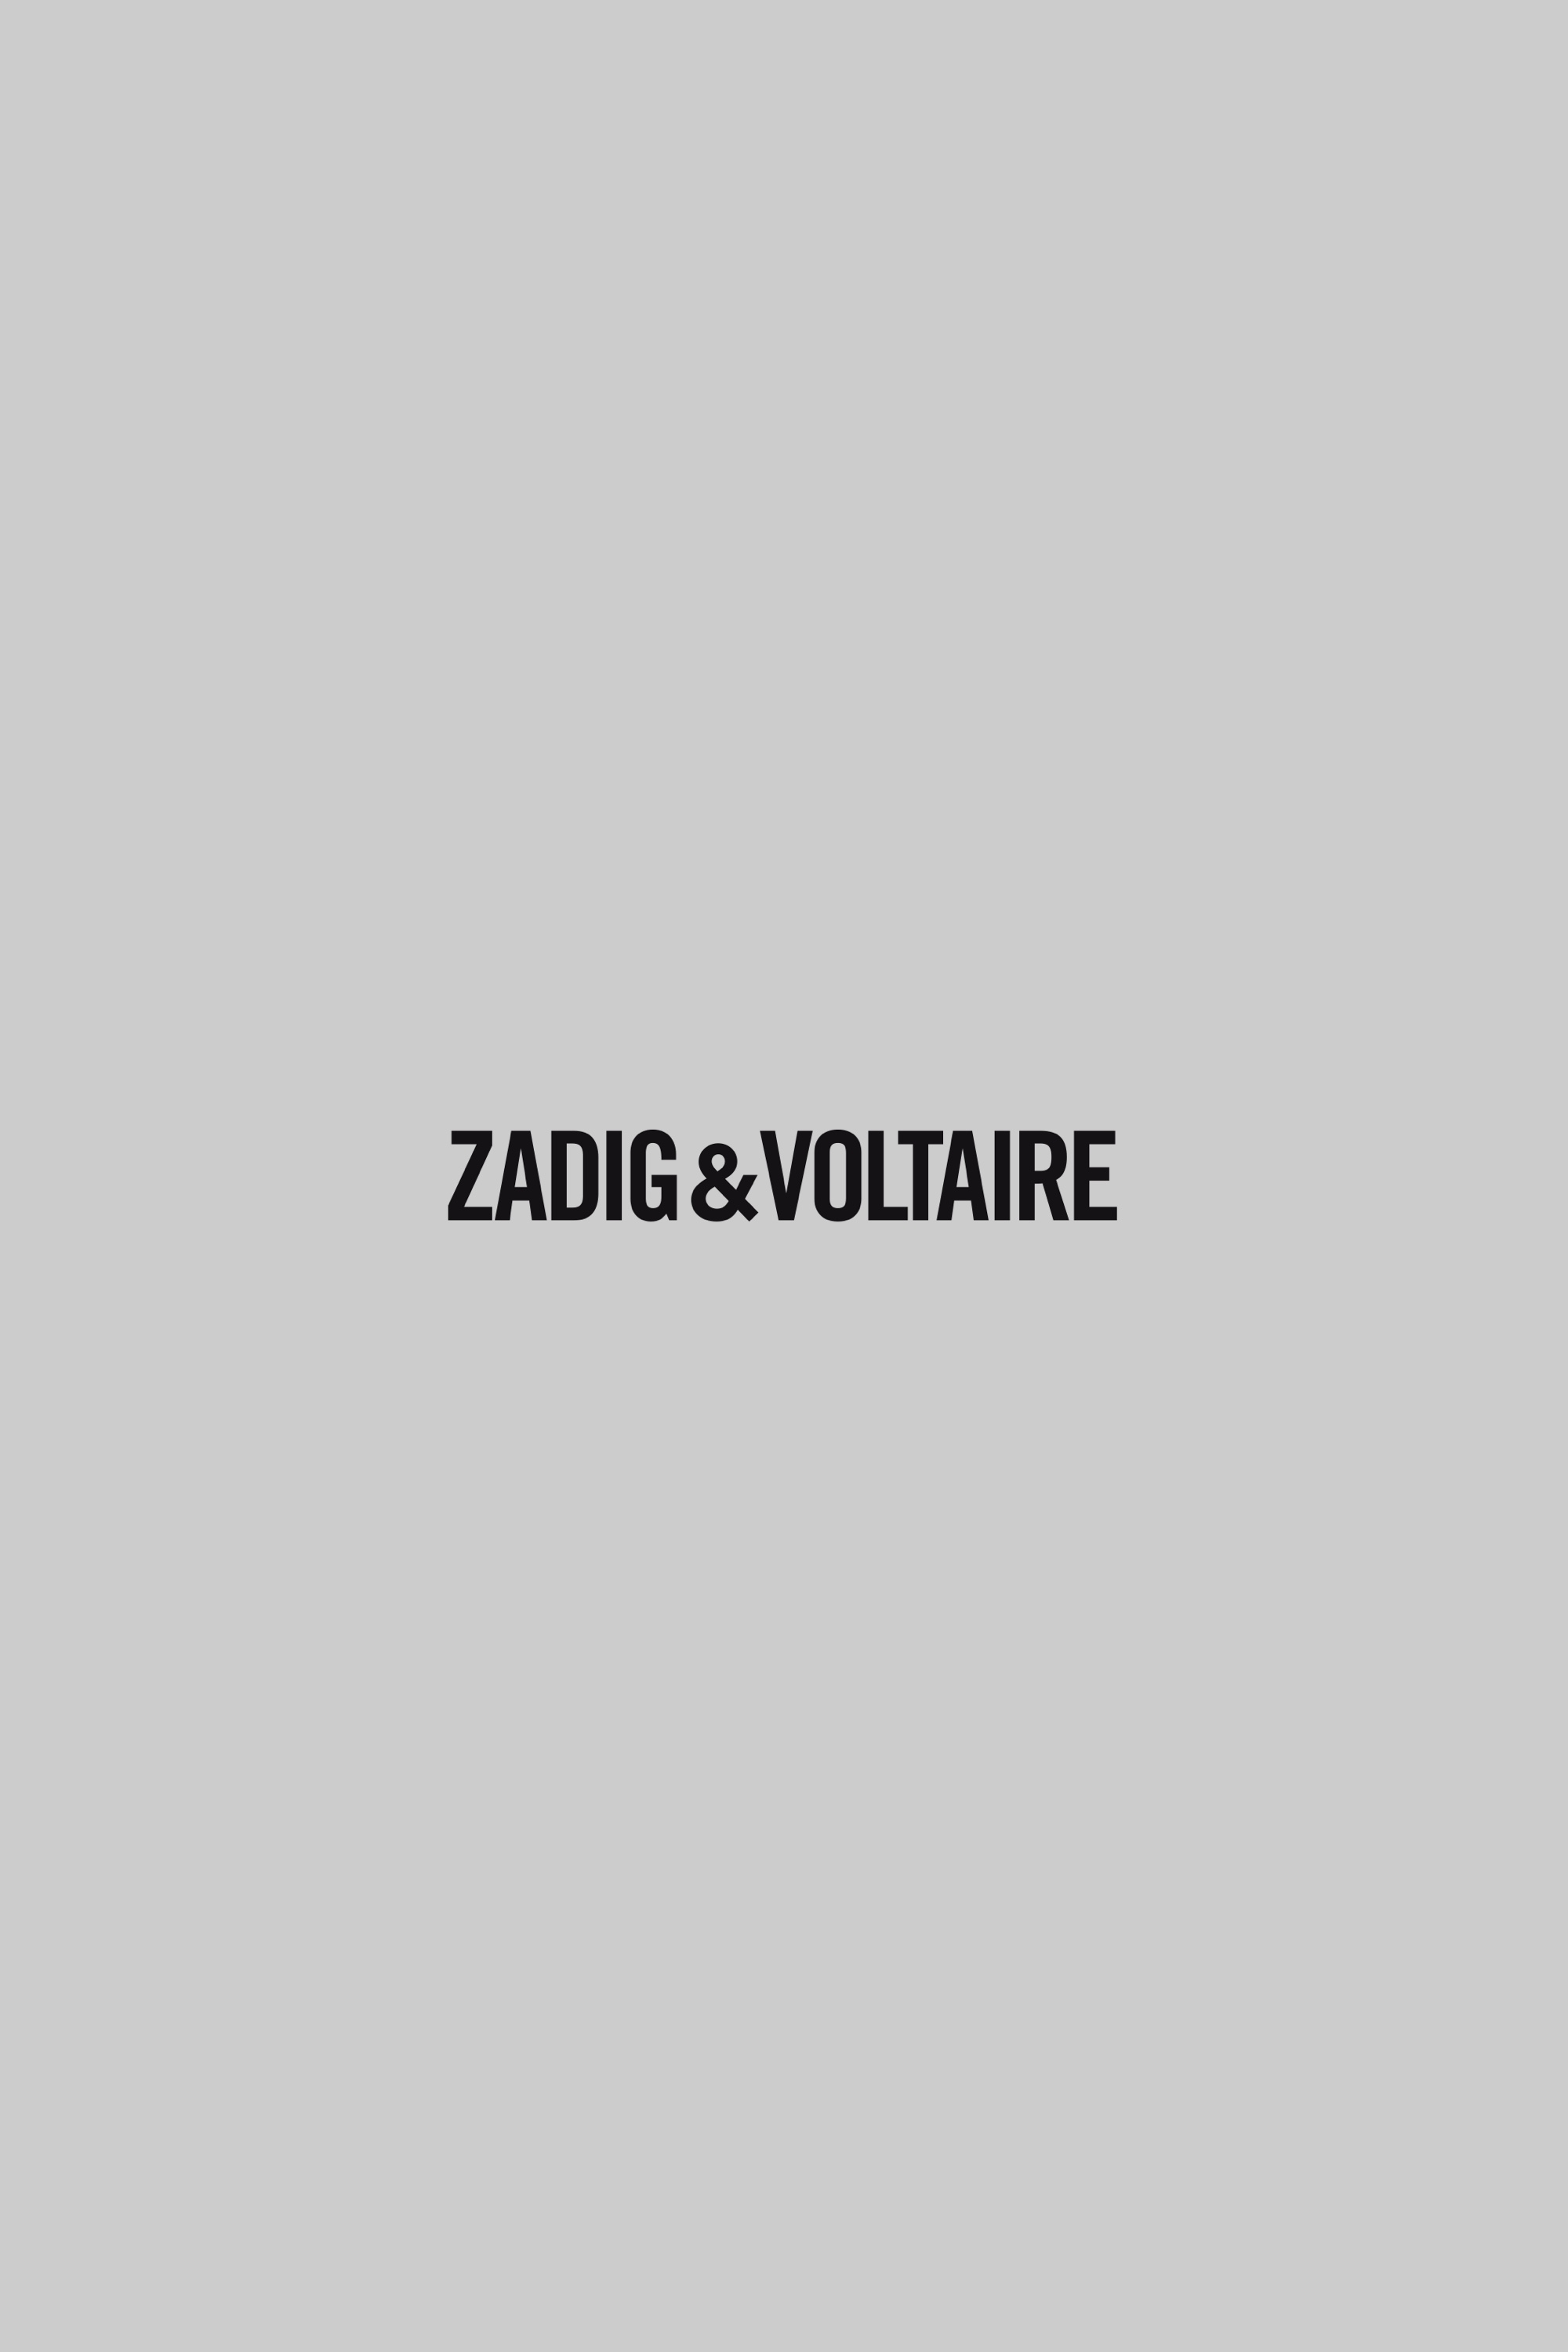 쟈딕 앤 볼테르 Peter 바지 Zadig & Voltaire Peter Trousers,WHITE